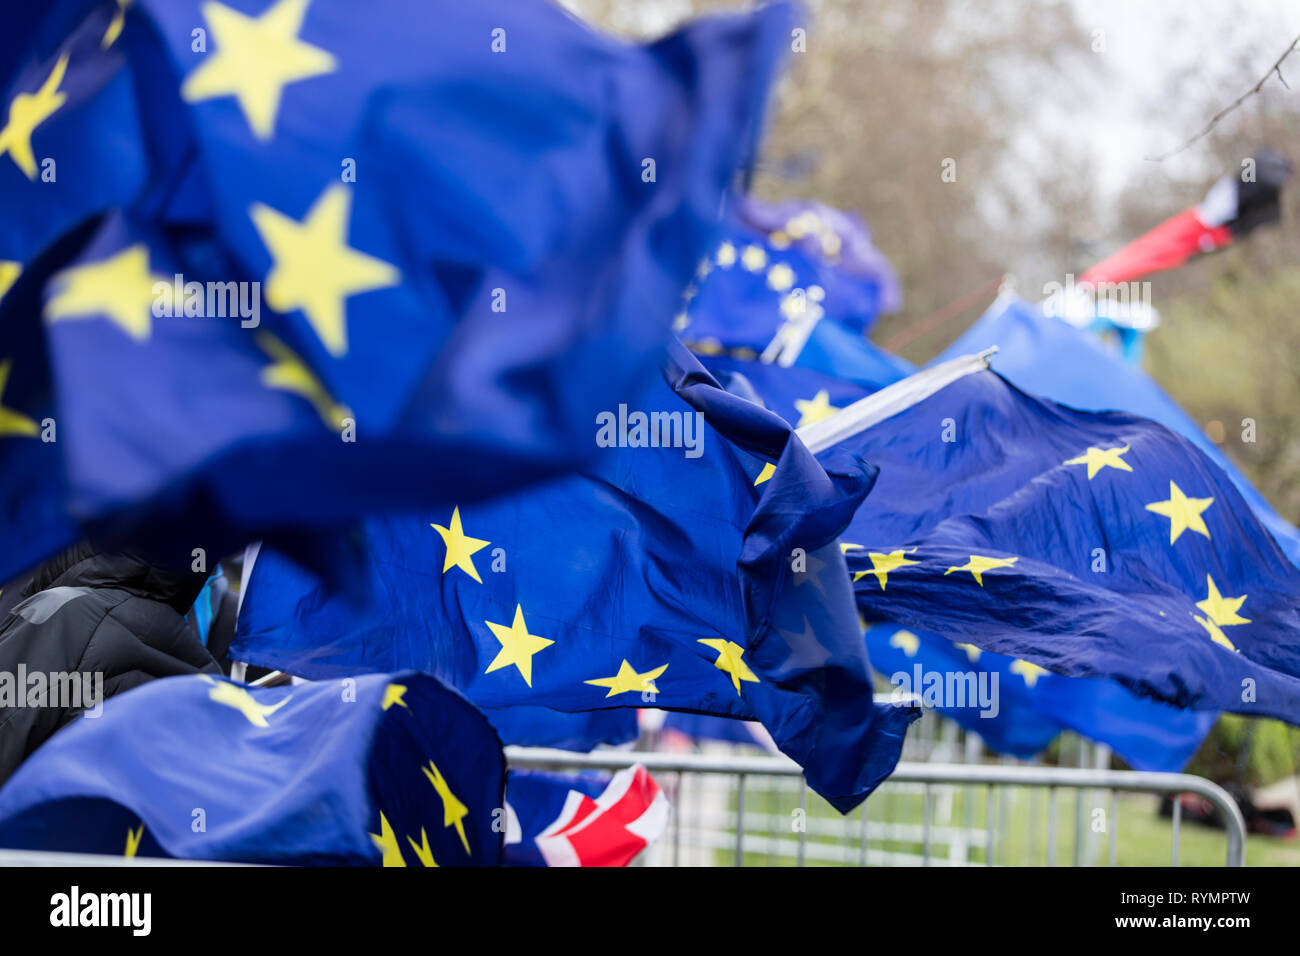 Flags of the European Union flying at a brexit march in London - Stock Image